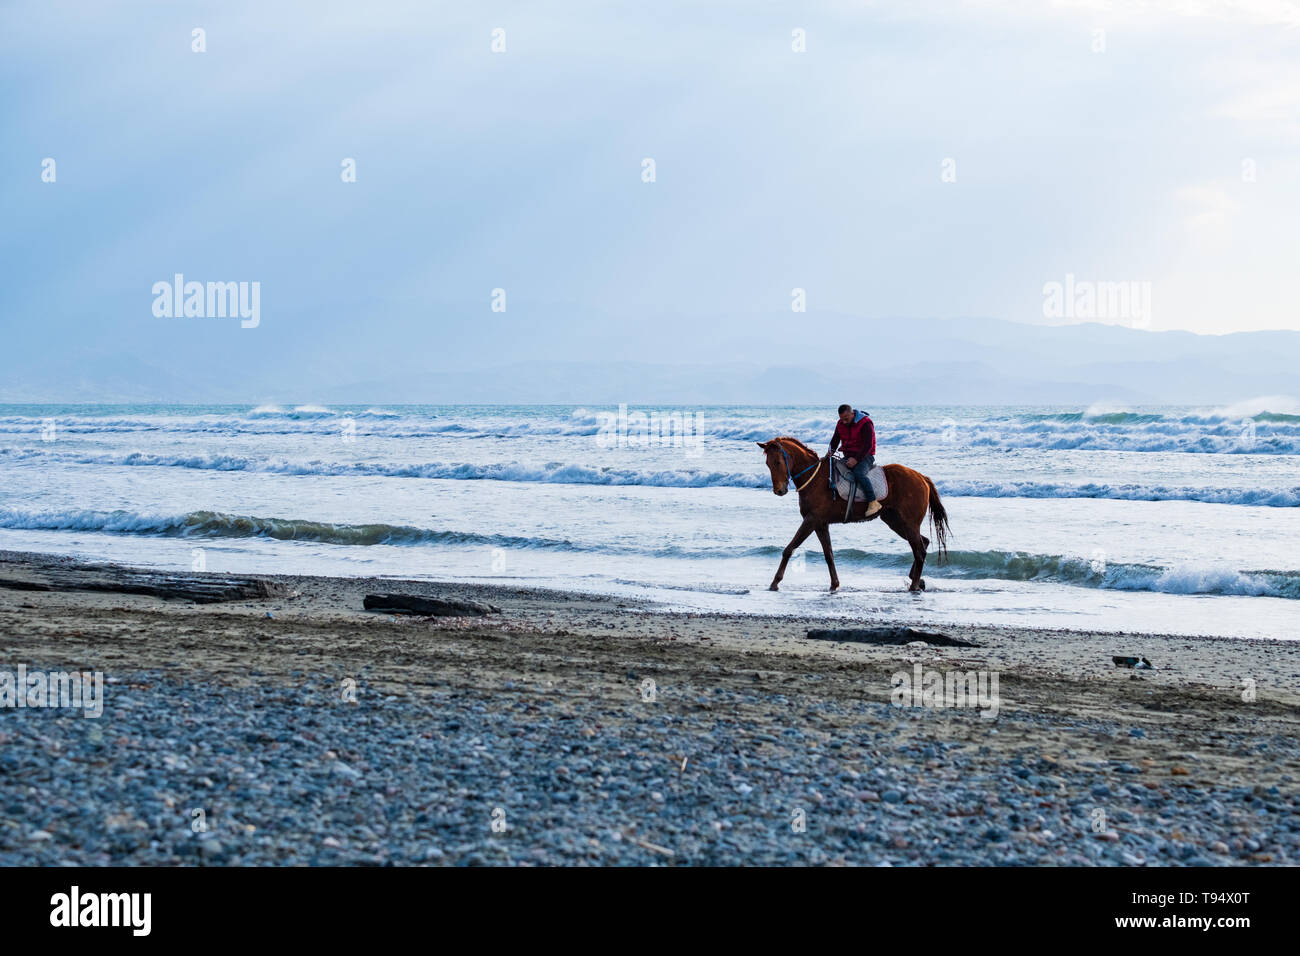 Ayia Eirini, Cyprus - 24 March, 2019: Man riding on a brown galloping horse in the sea waters of Ayia Erini beach in Cyprus against a rough sea - Stock Image